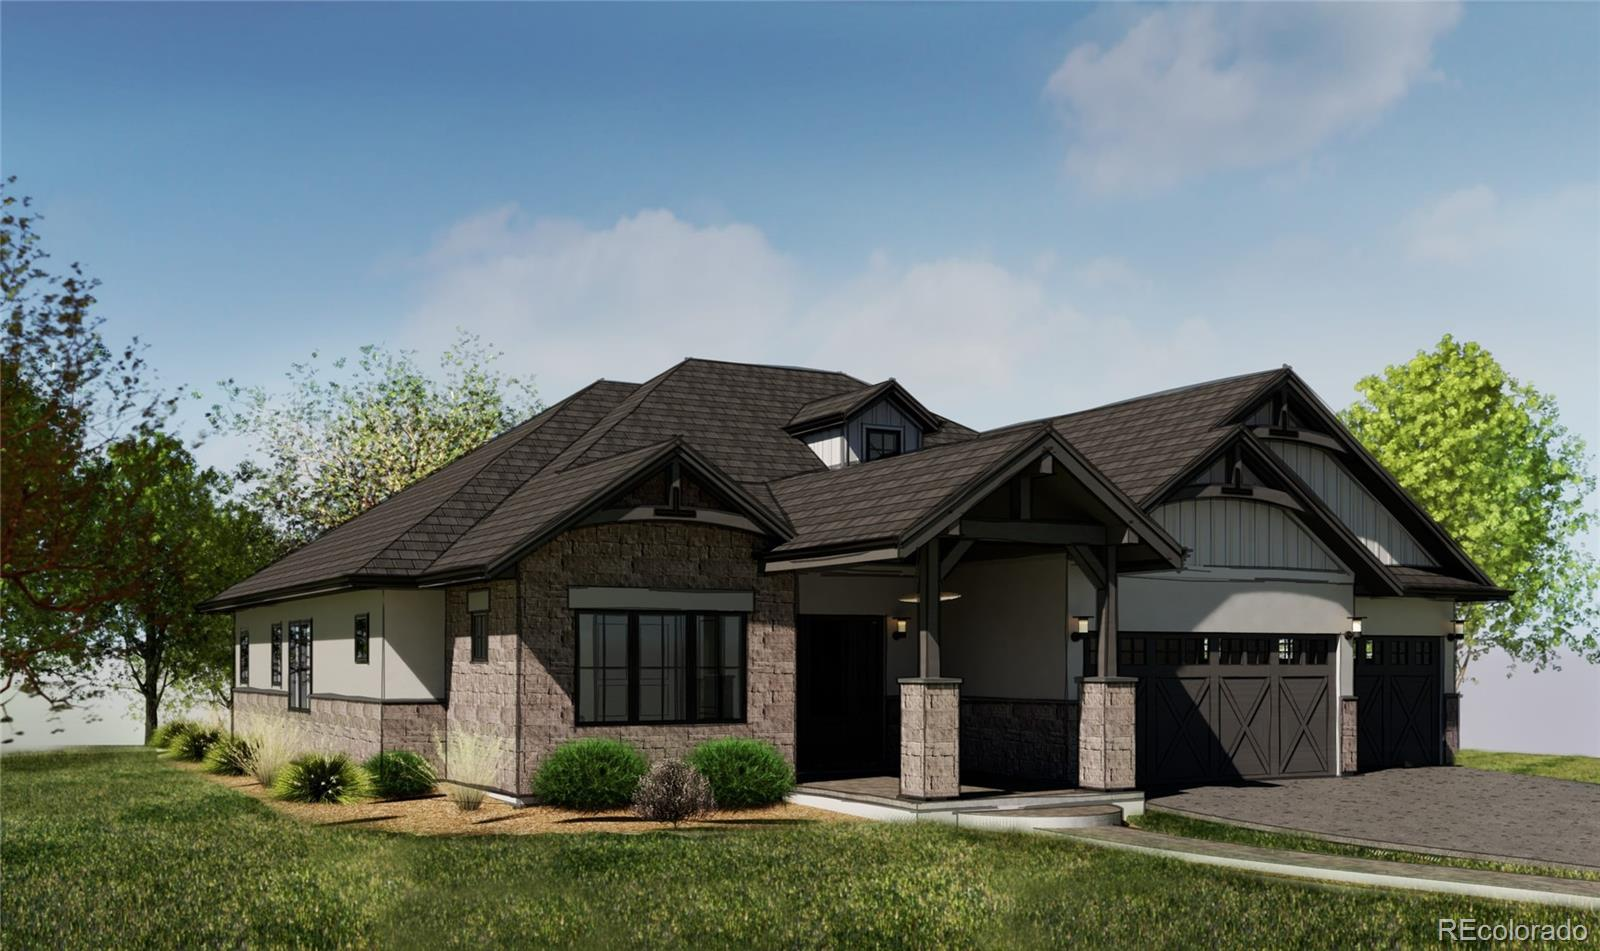 3474 W 154th Place, Broomfield, CO 80023 - #: 4435794